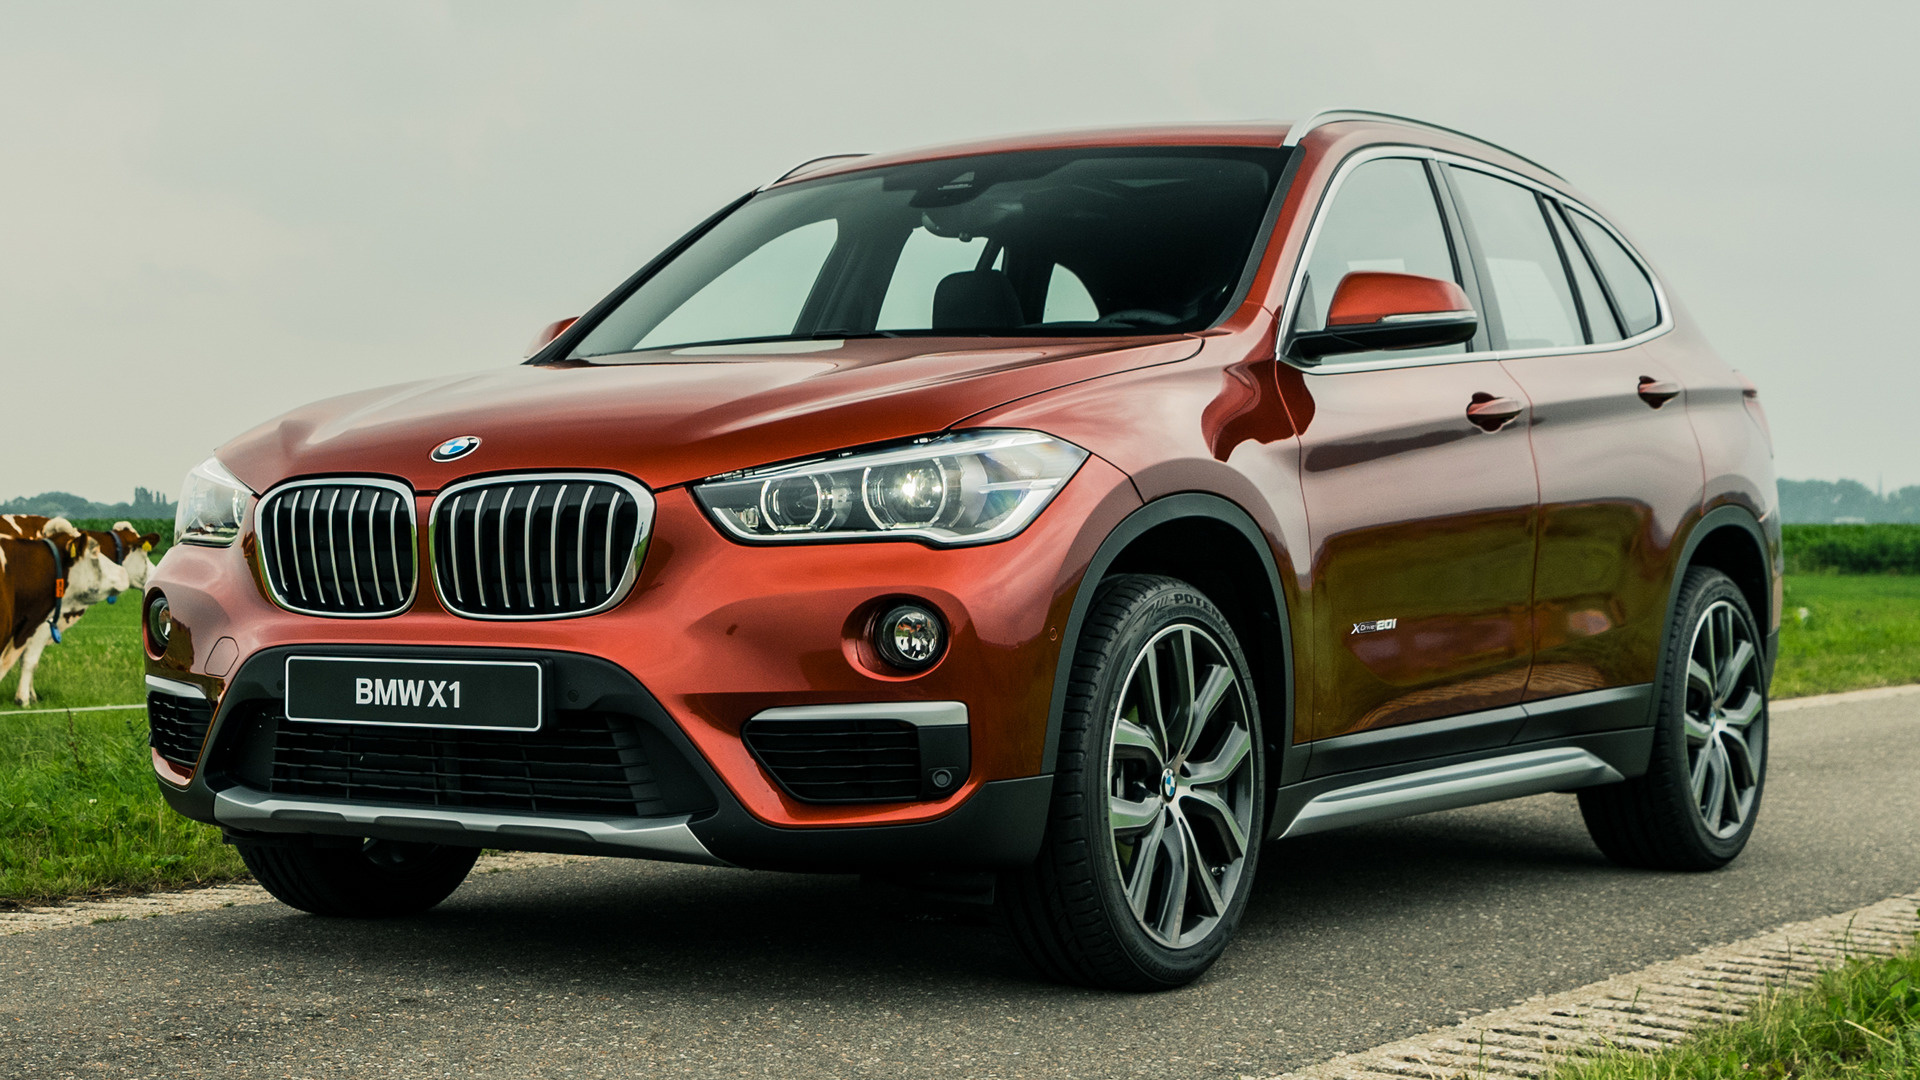 2017 Bmw X1 Orange Edition Wallpapers And Hd Images